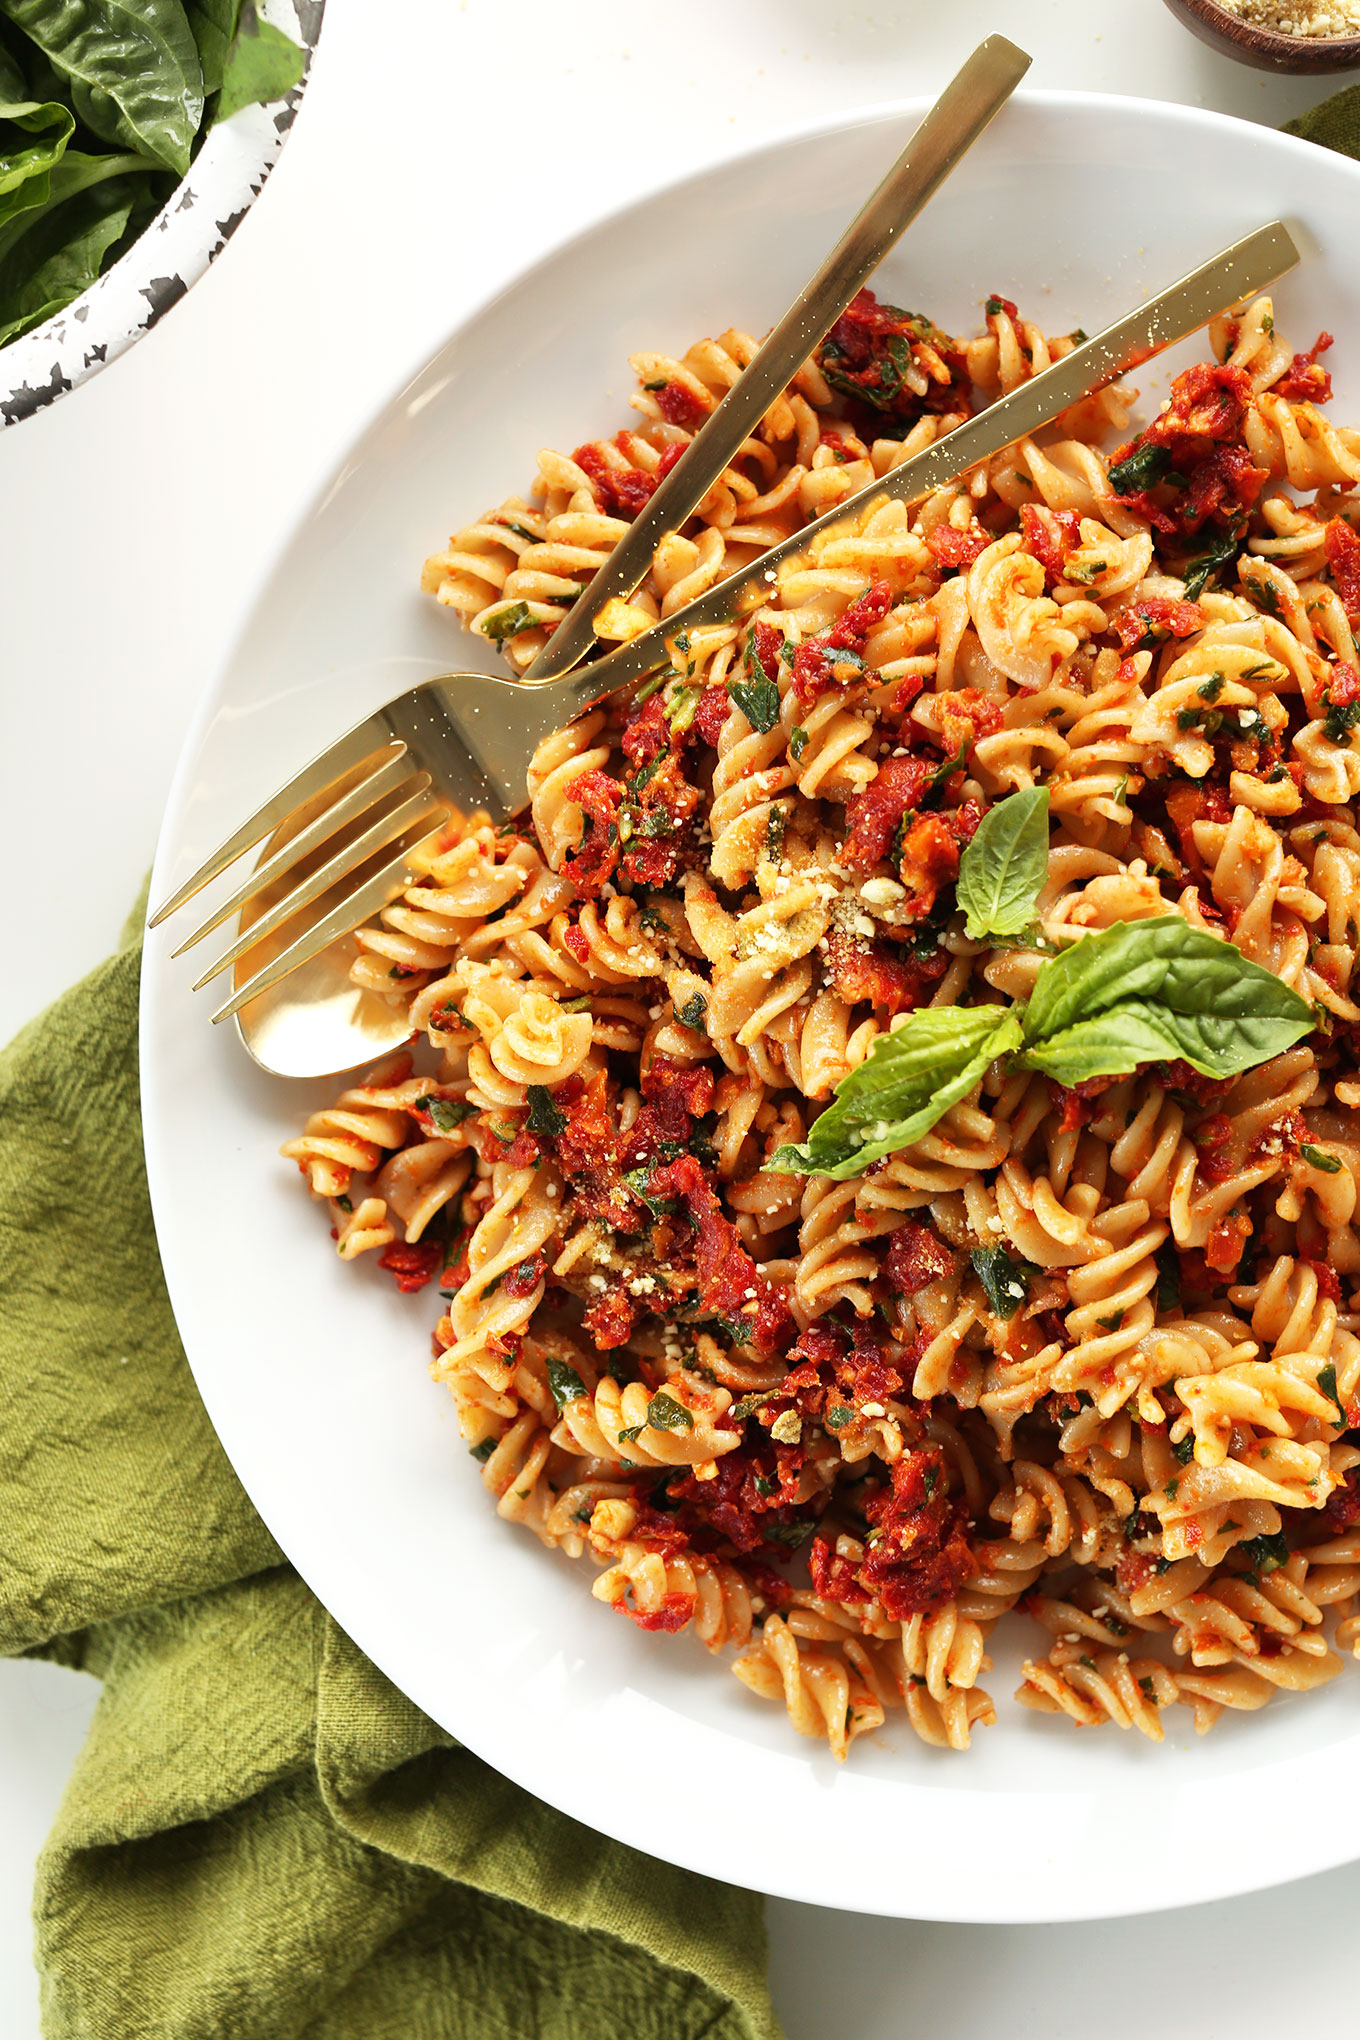 Simple gluten-free vegan dinner of our Sun-Dried Tomato Pesto Pasta recipe